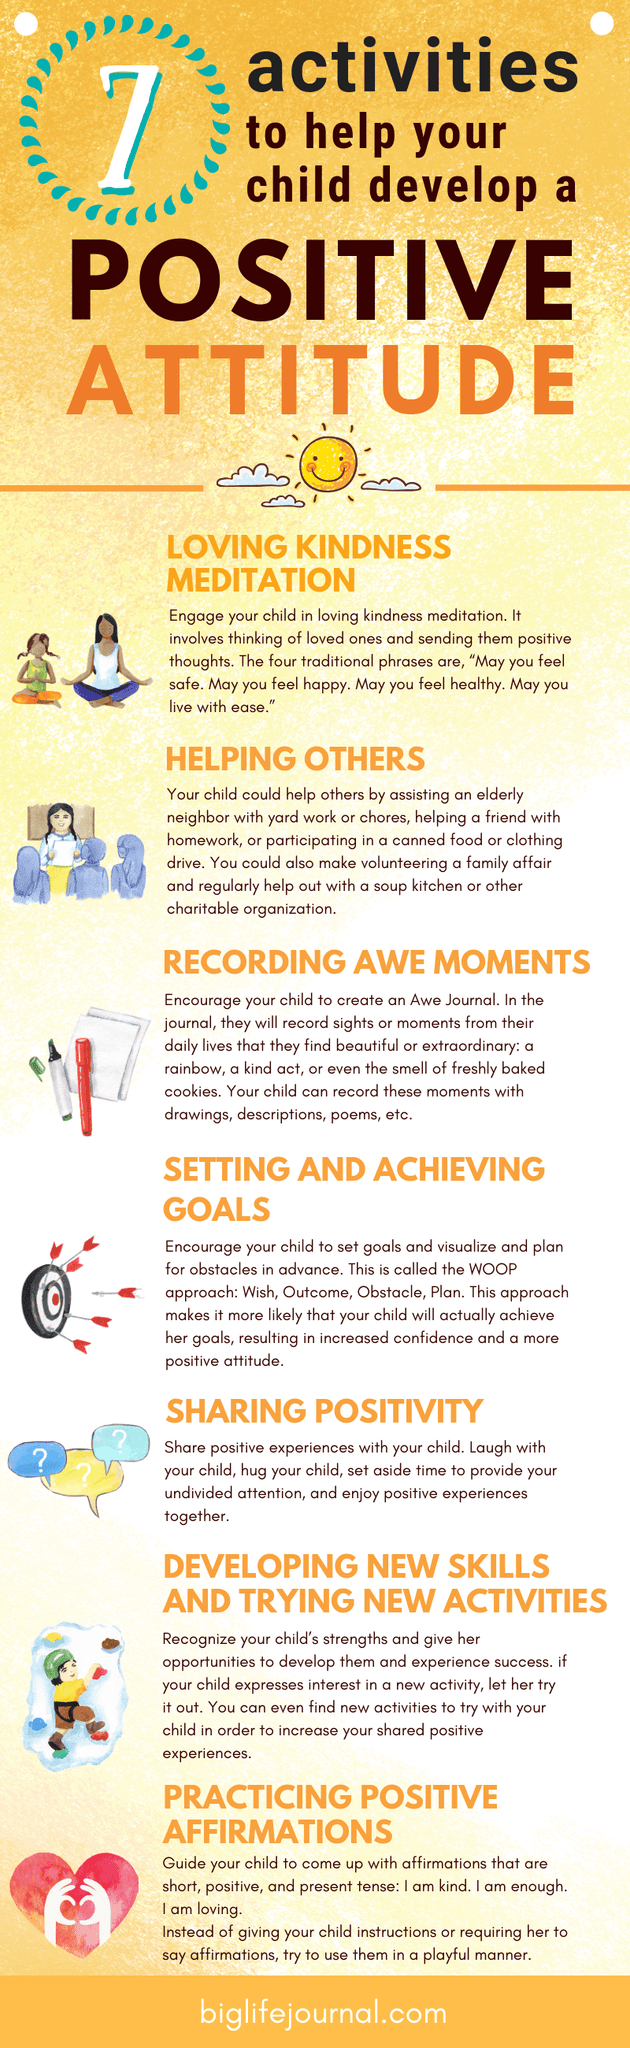 7 Activities to Help Your Child Develop a Positive Attitude